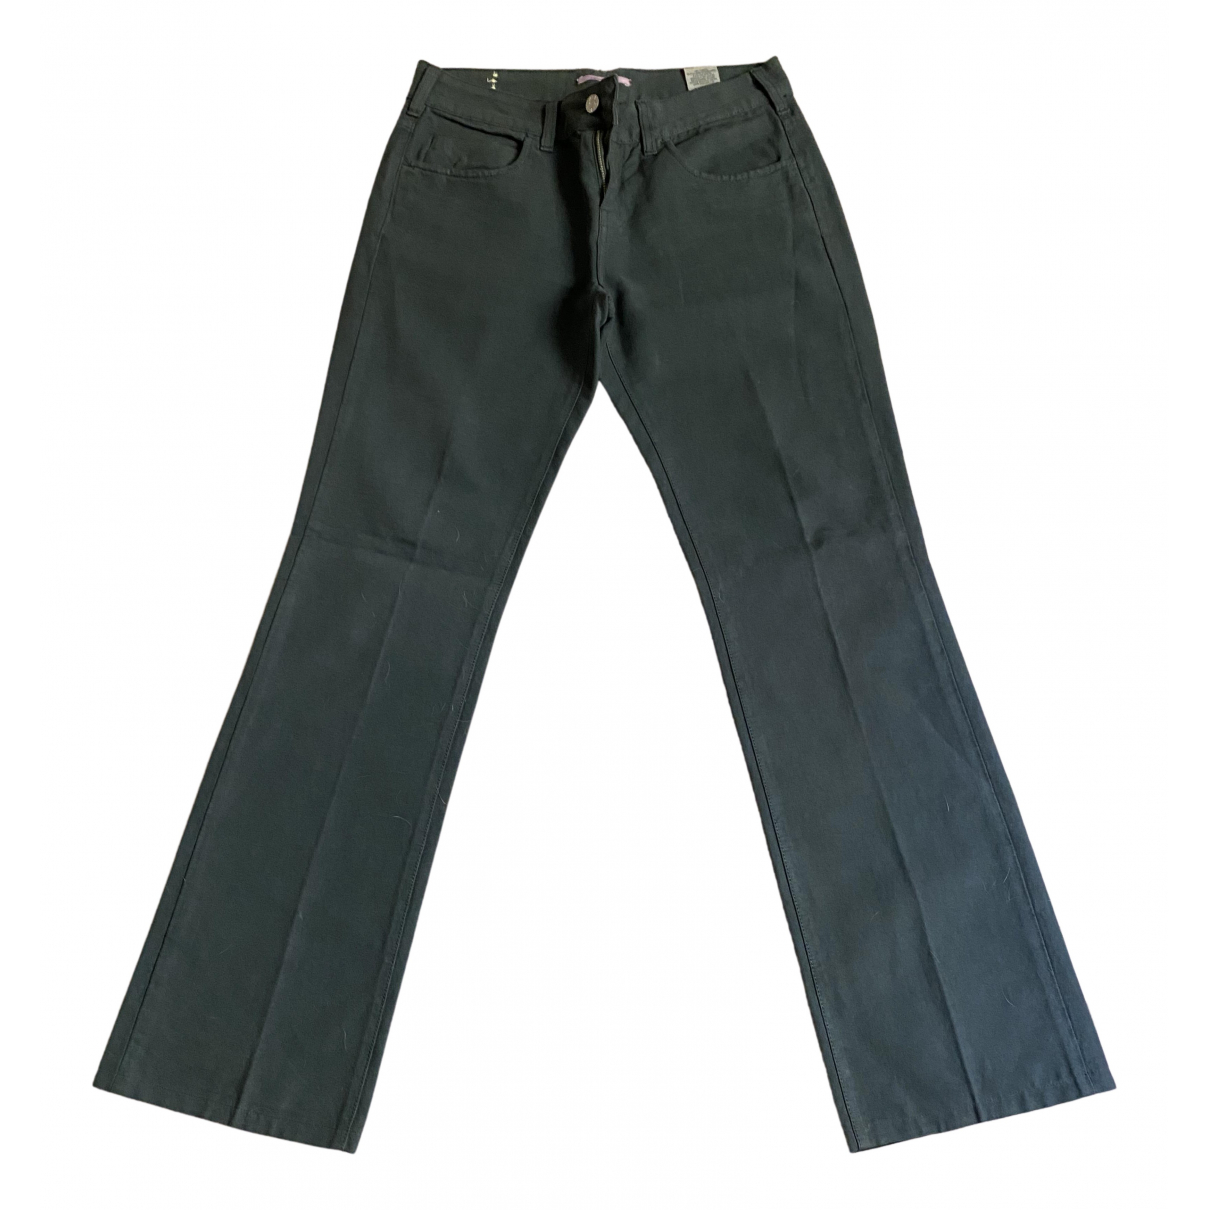 Vanessa Bruno N Green Cotton Jeans for Women 29 US